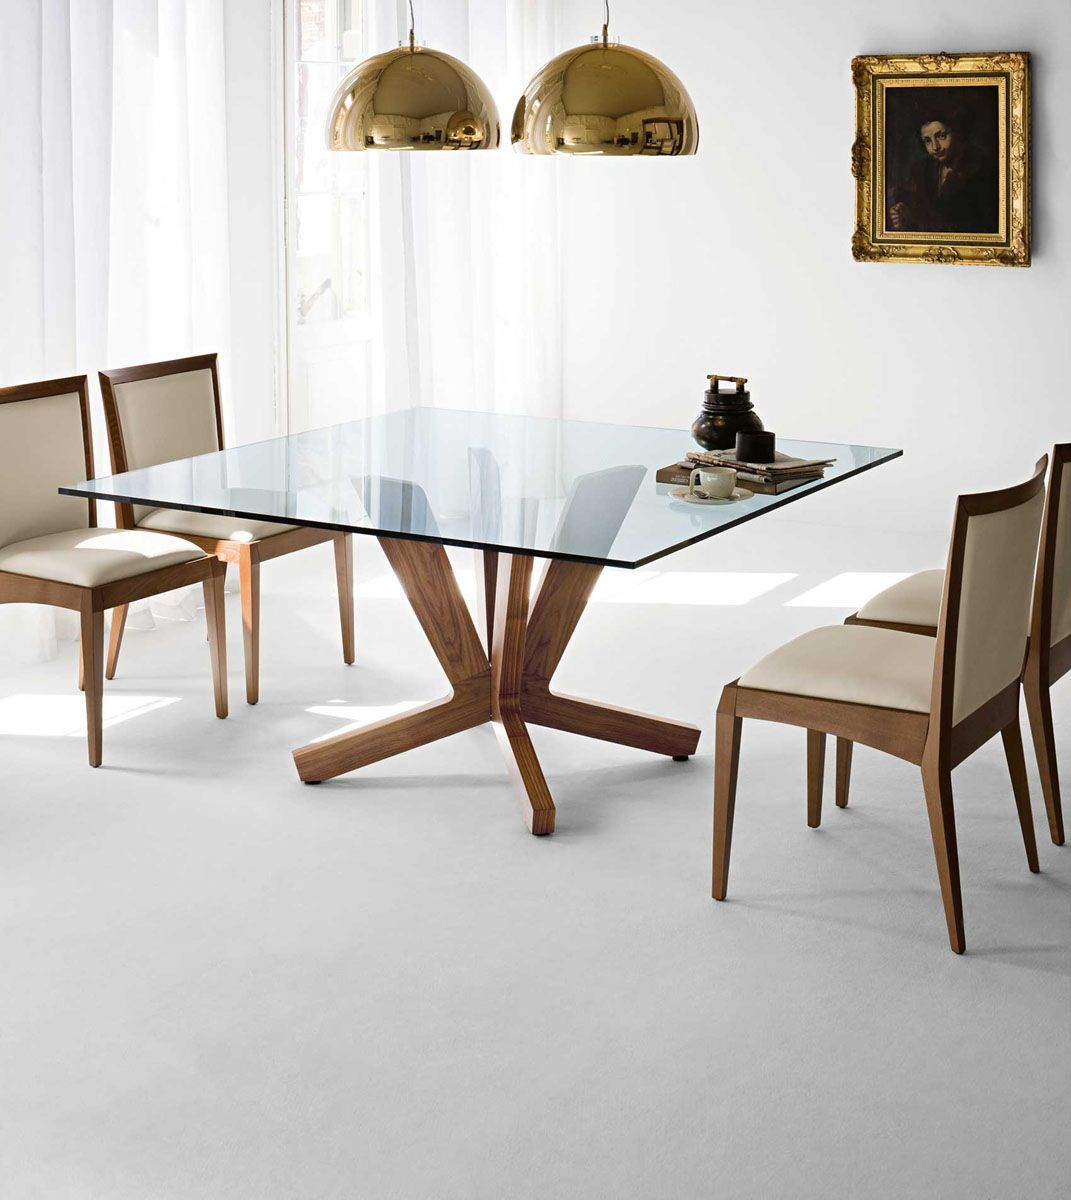 Square Glass Top Dining Table For 8 Square Dining Room Table Dining Room Small Glass Dining Room Table